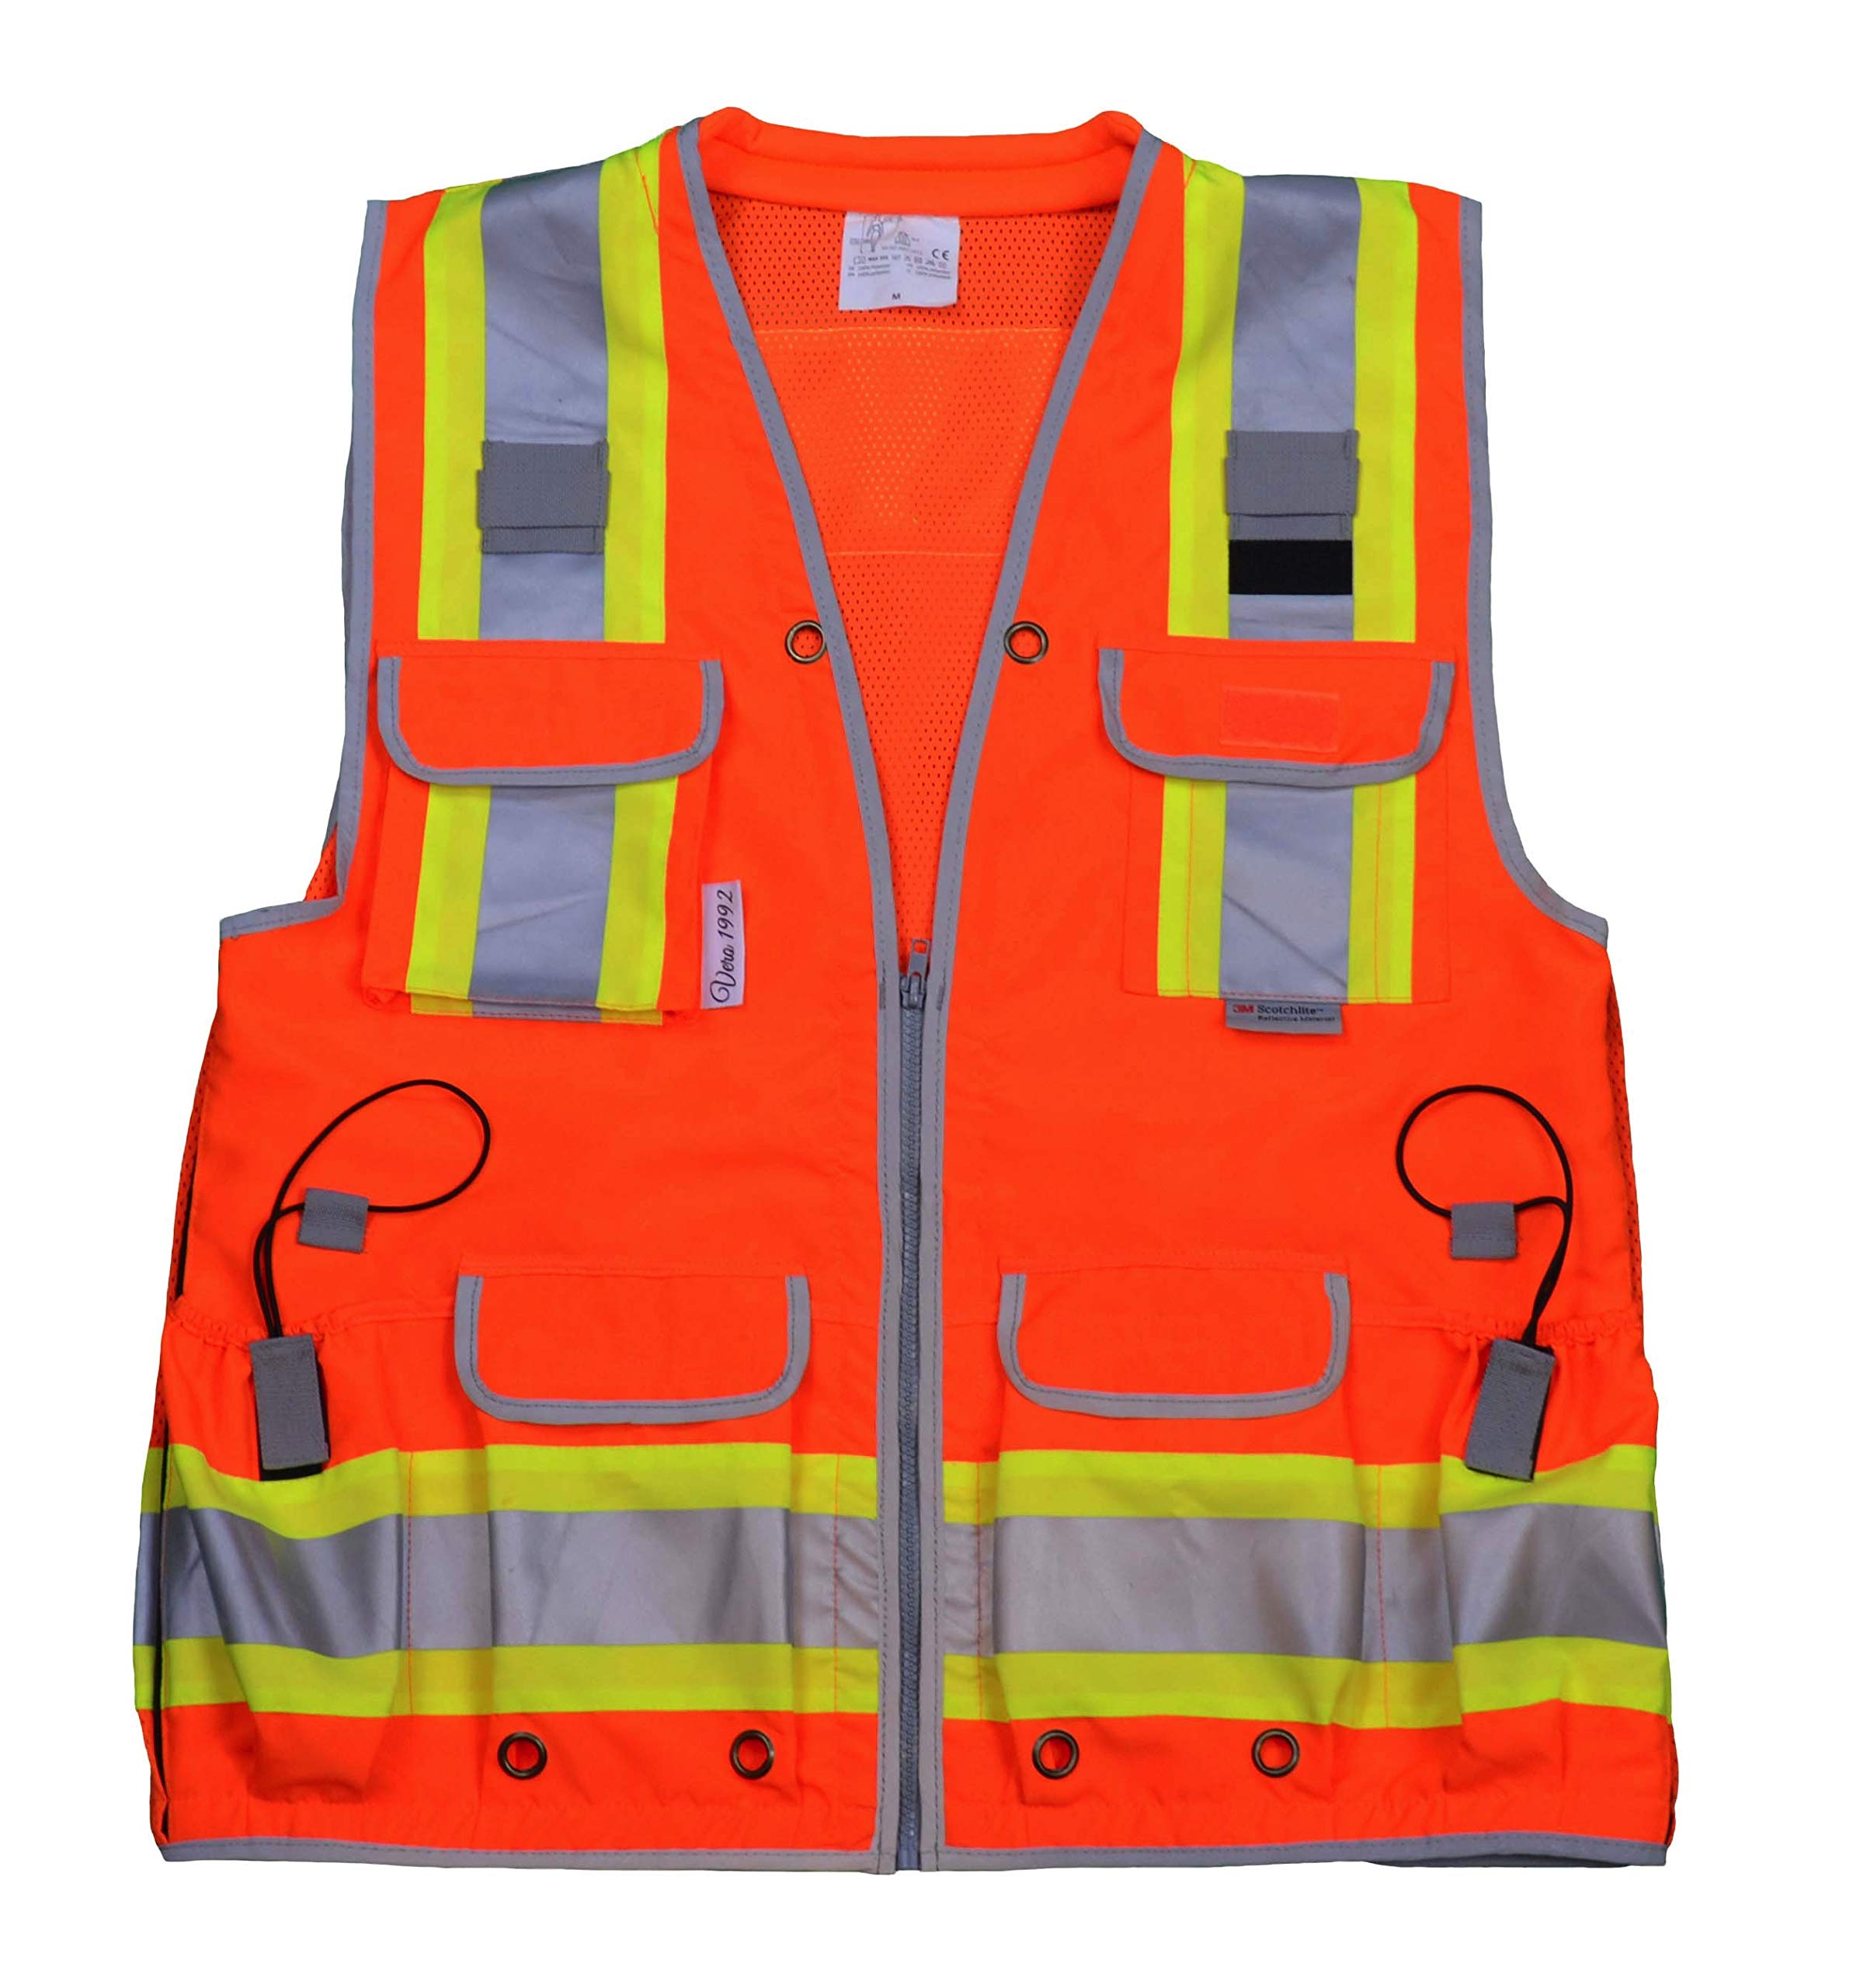 Radians Safety Vest with Pockets-Reflective Vest Class 2 Heavy Woven Two Tone Engineer Hi Viz 3M 8712 Tape (XX-Large Orange)